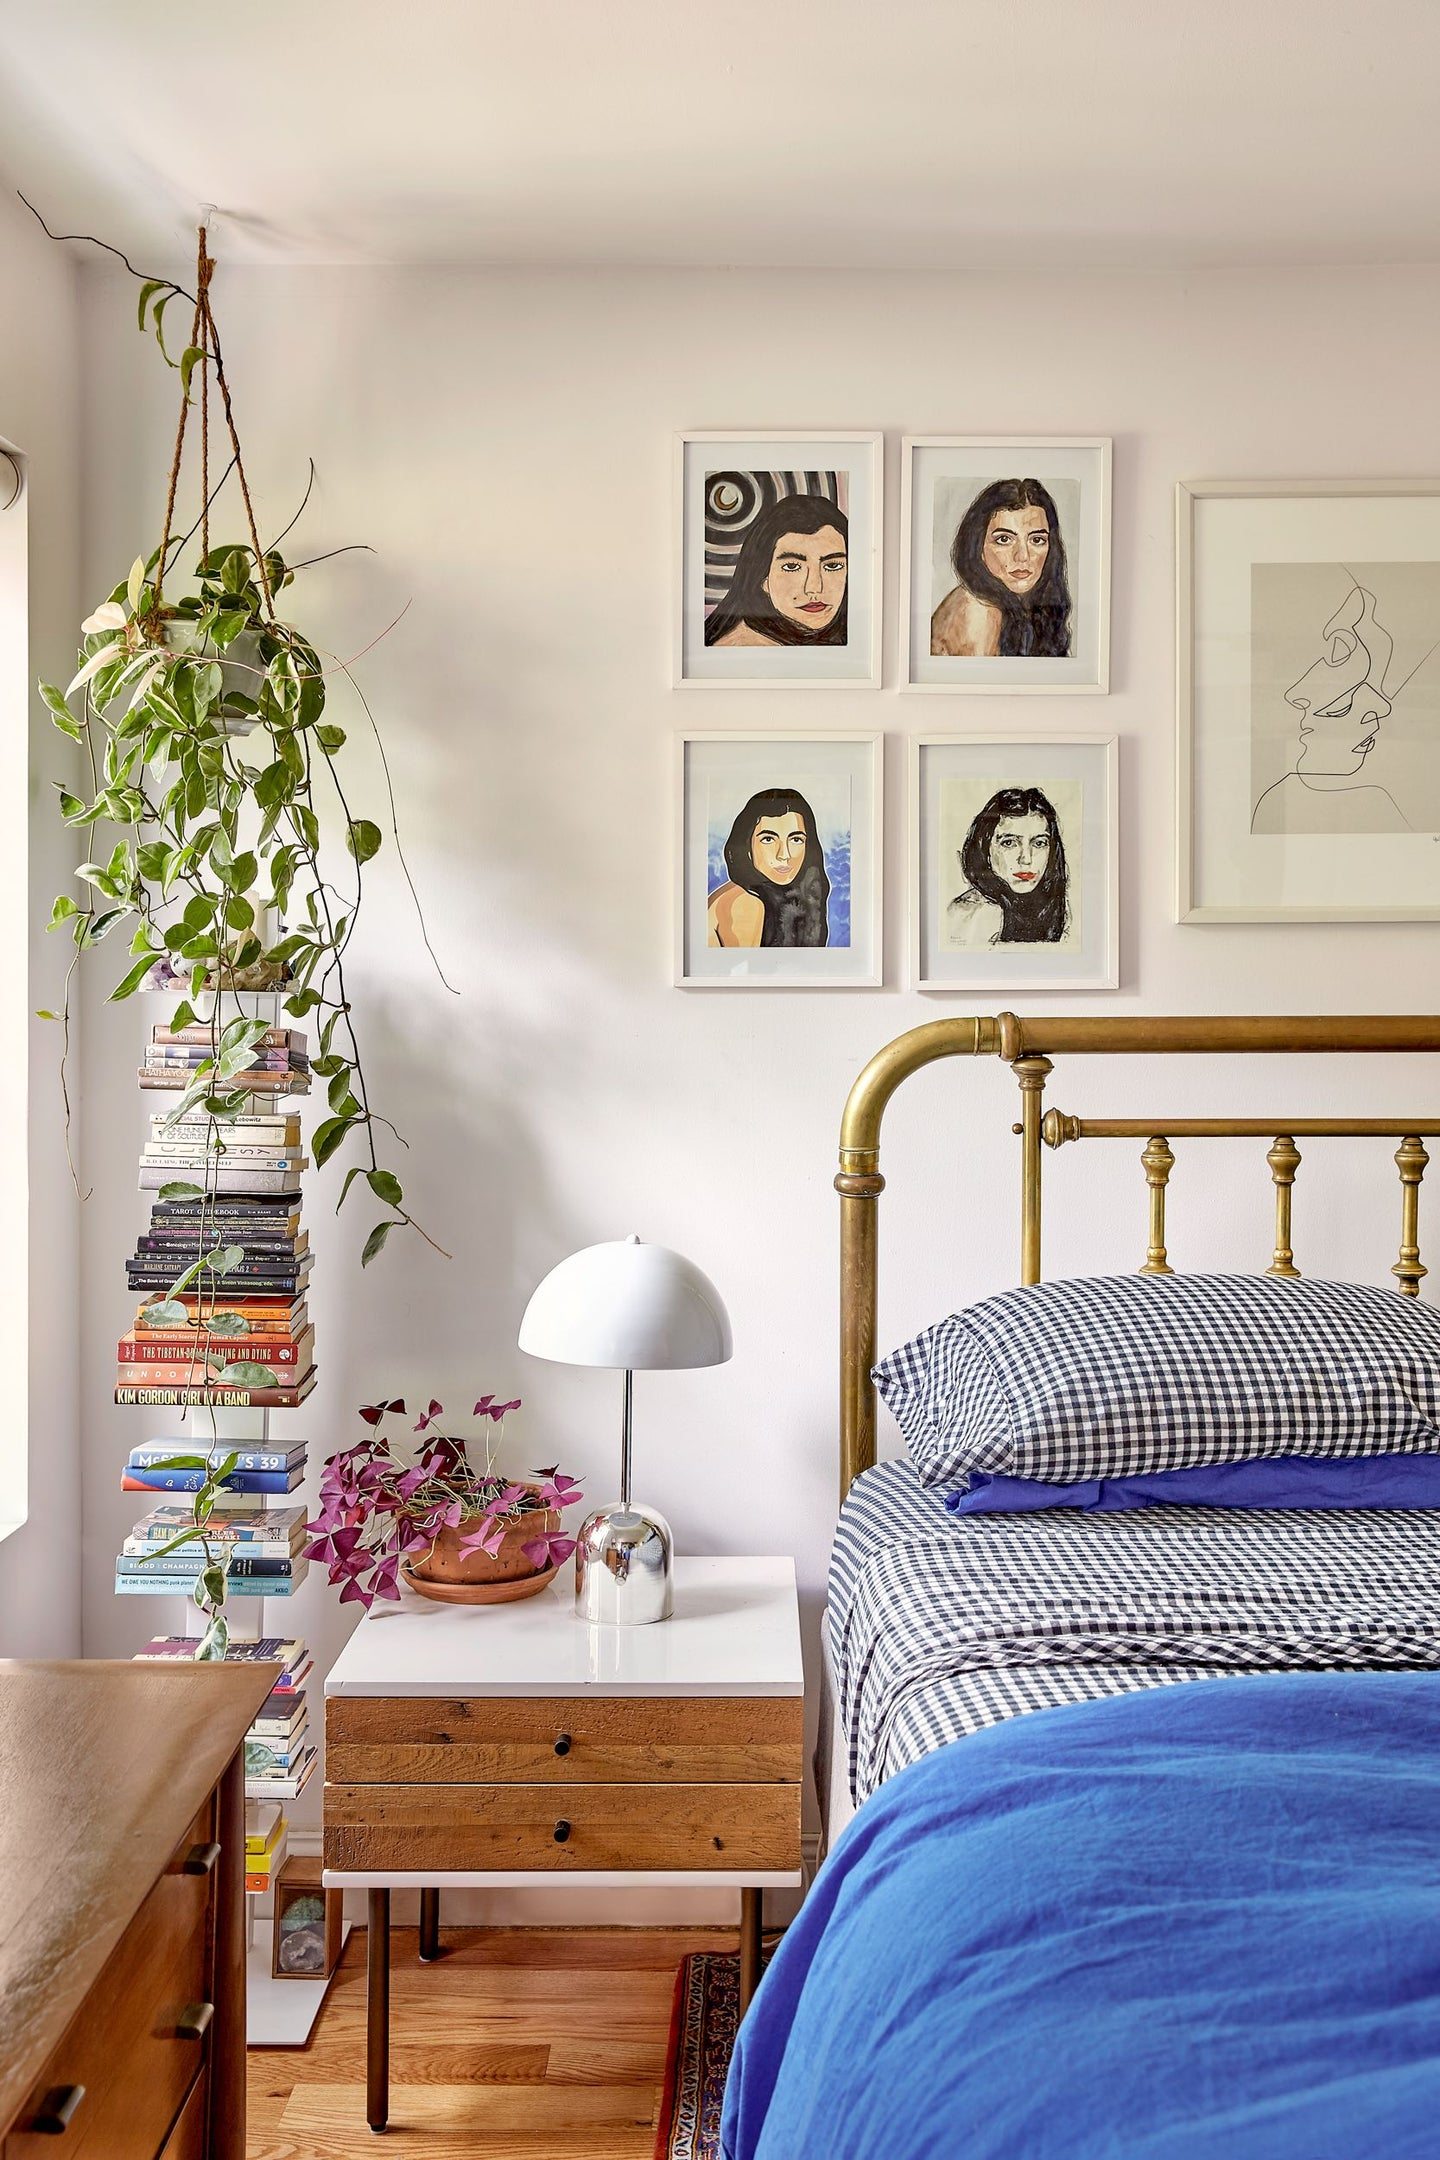 Bedroom with hanging plant and stack of books